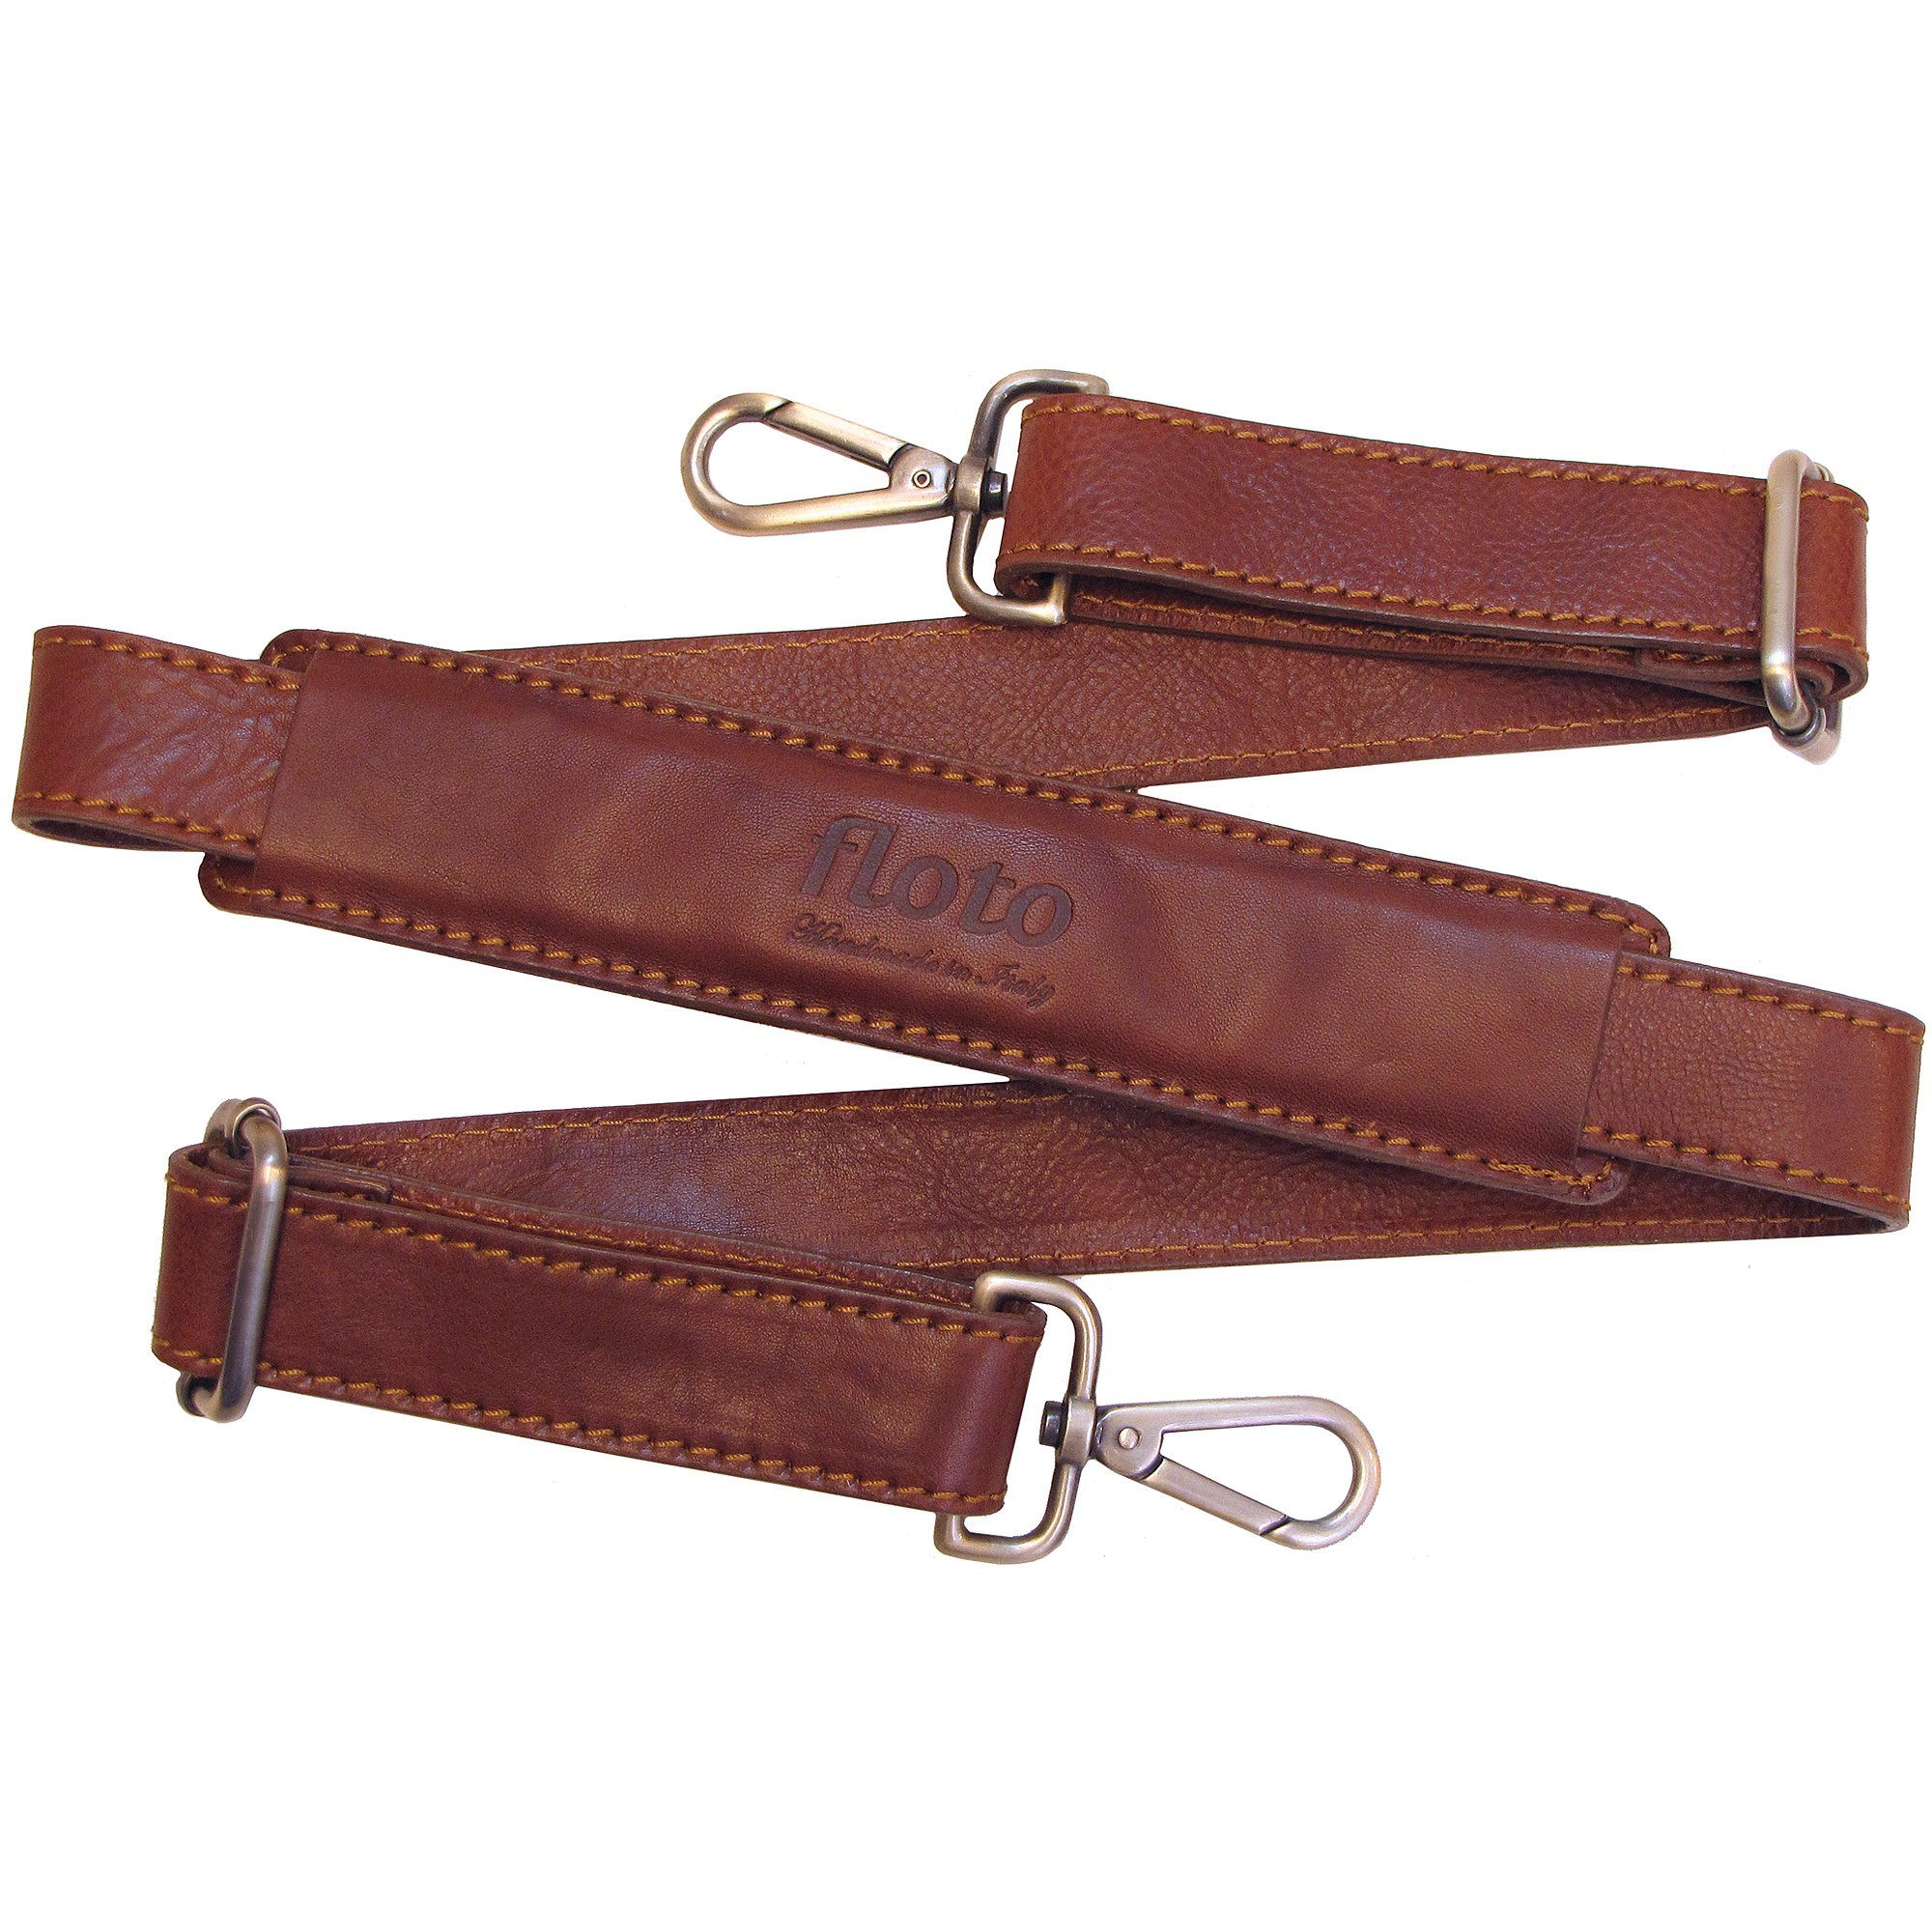 Floto Leather Grande Strap in Saddle Brown for Roma Duffle, Cabin Bag, Travel Bag by Floto